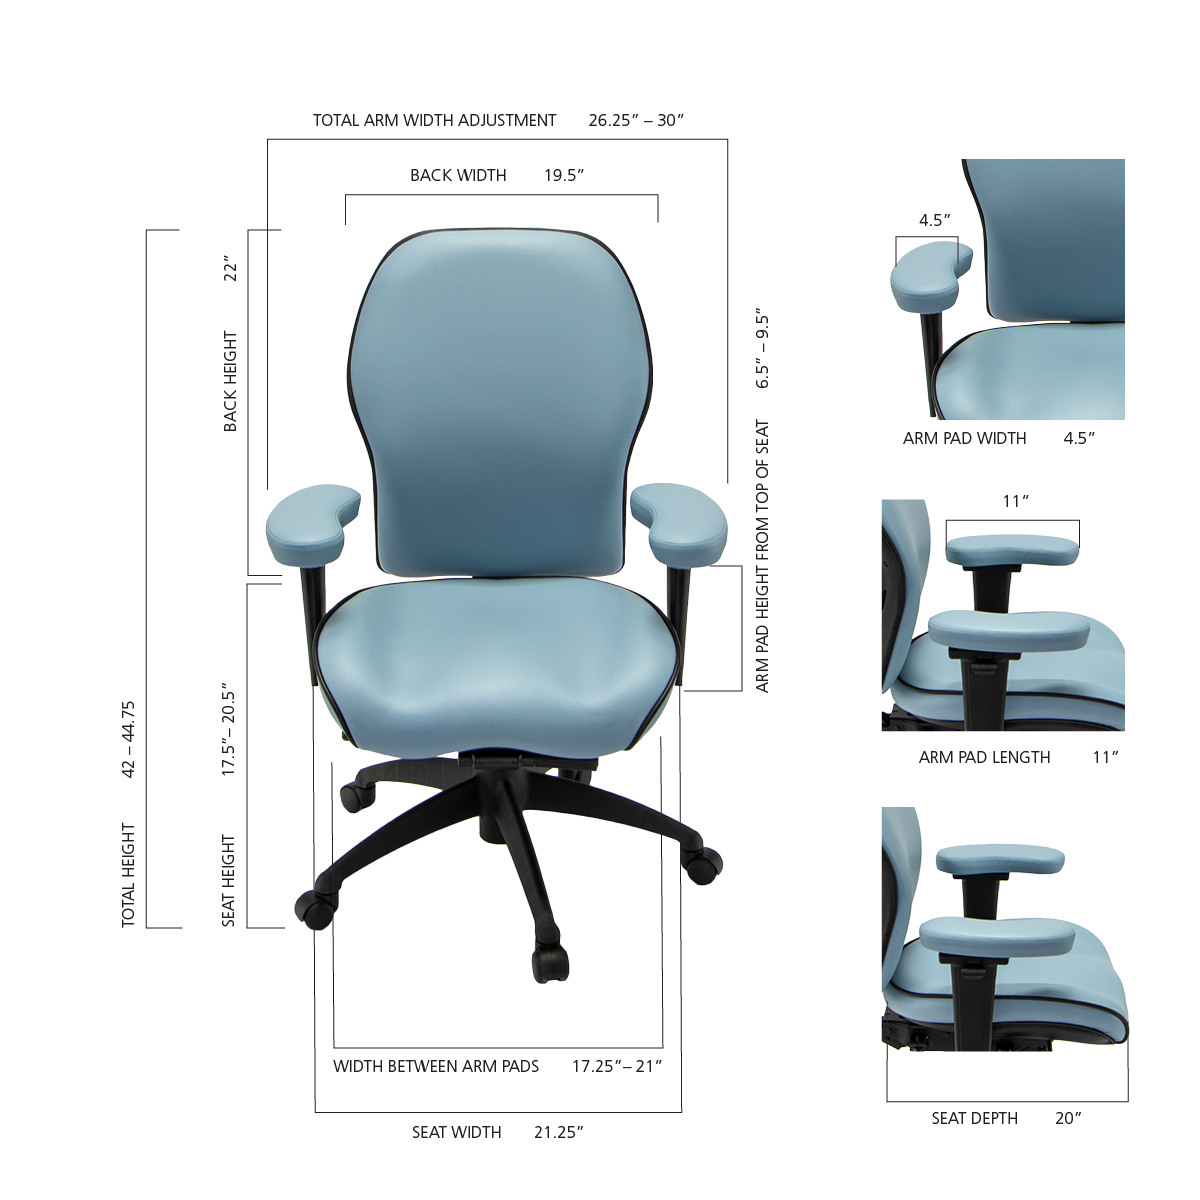 Size Guide for LIFEFORM Chairs